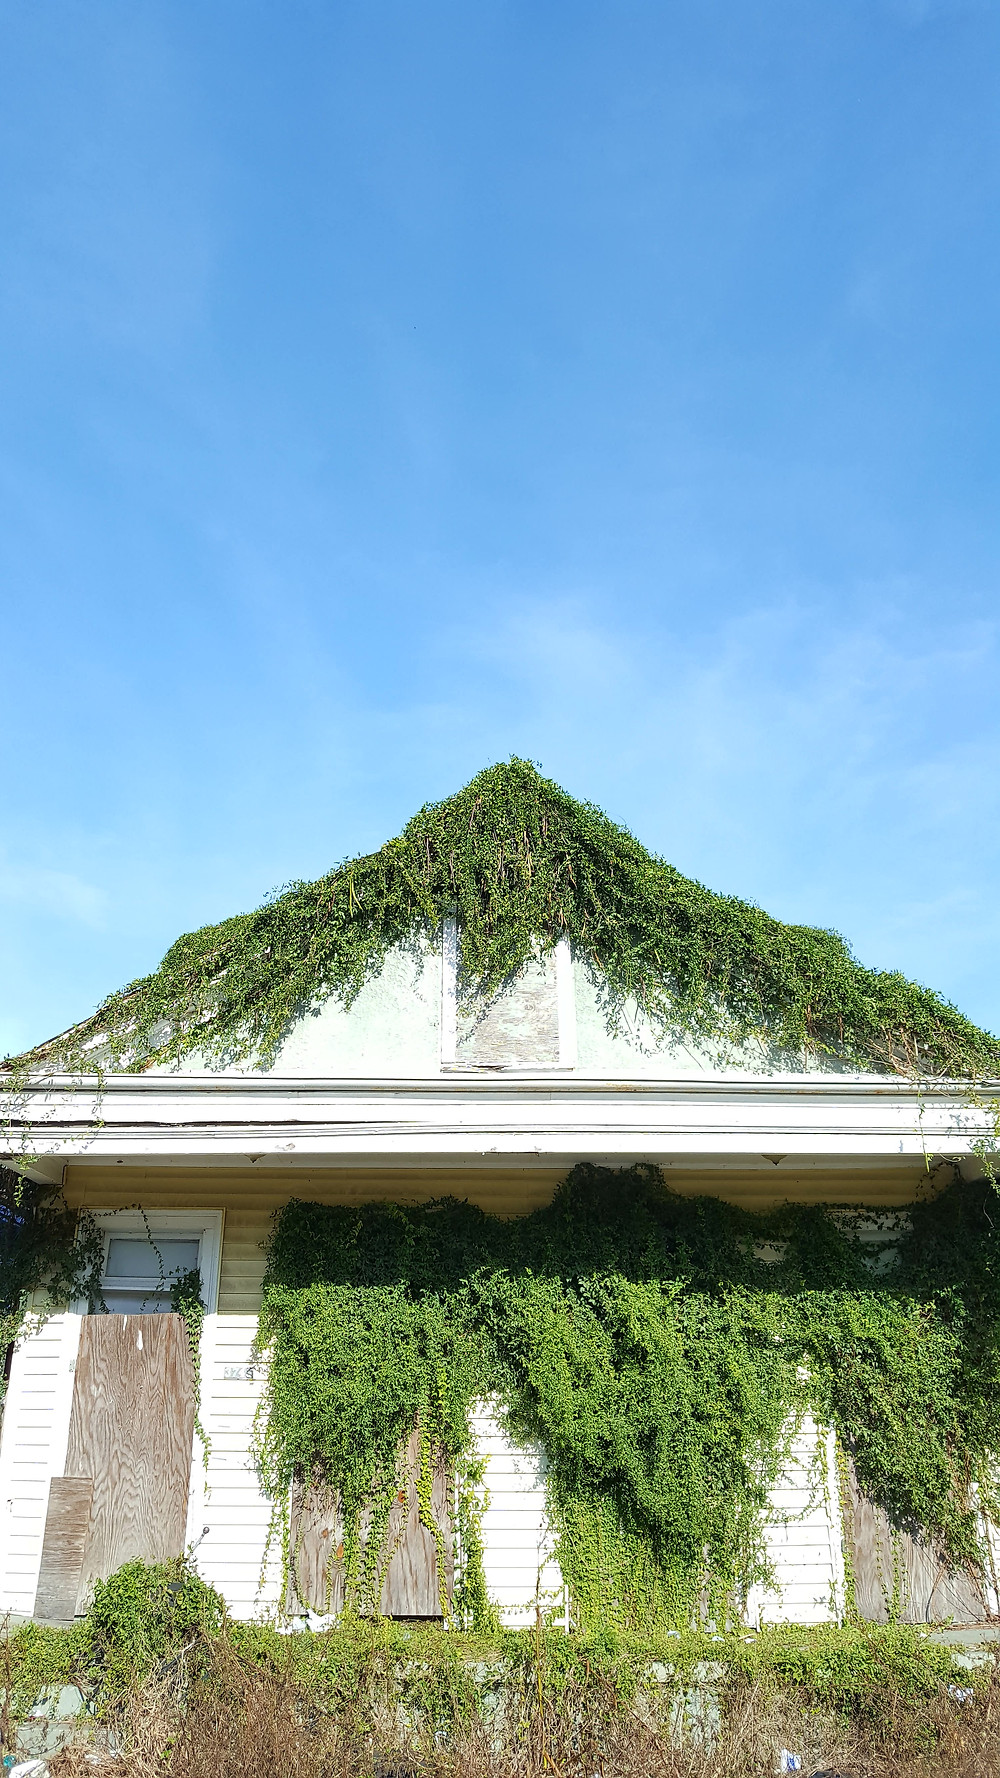 Old New Orleans house with overgrowth